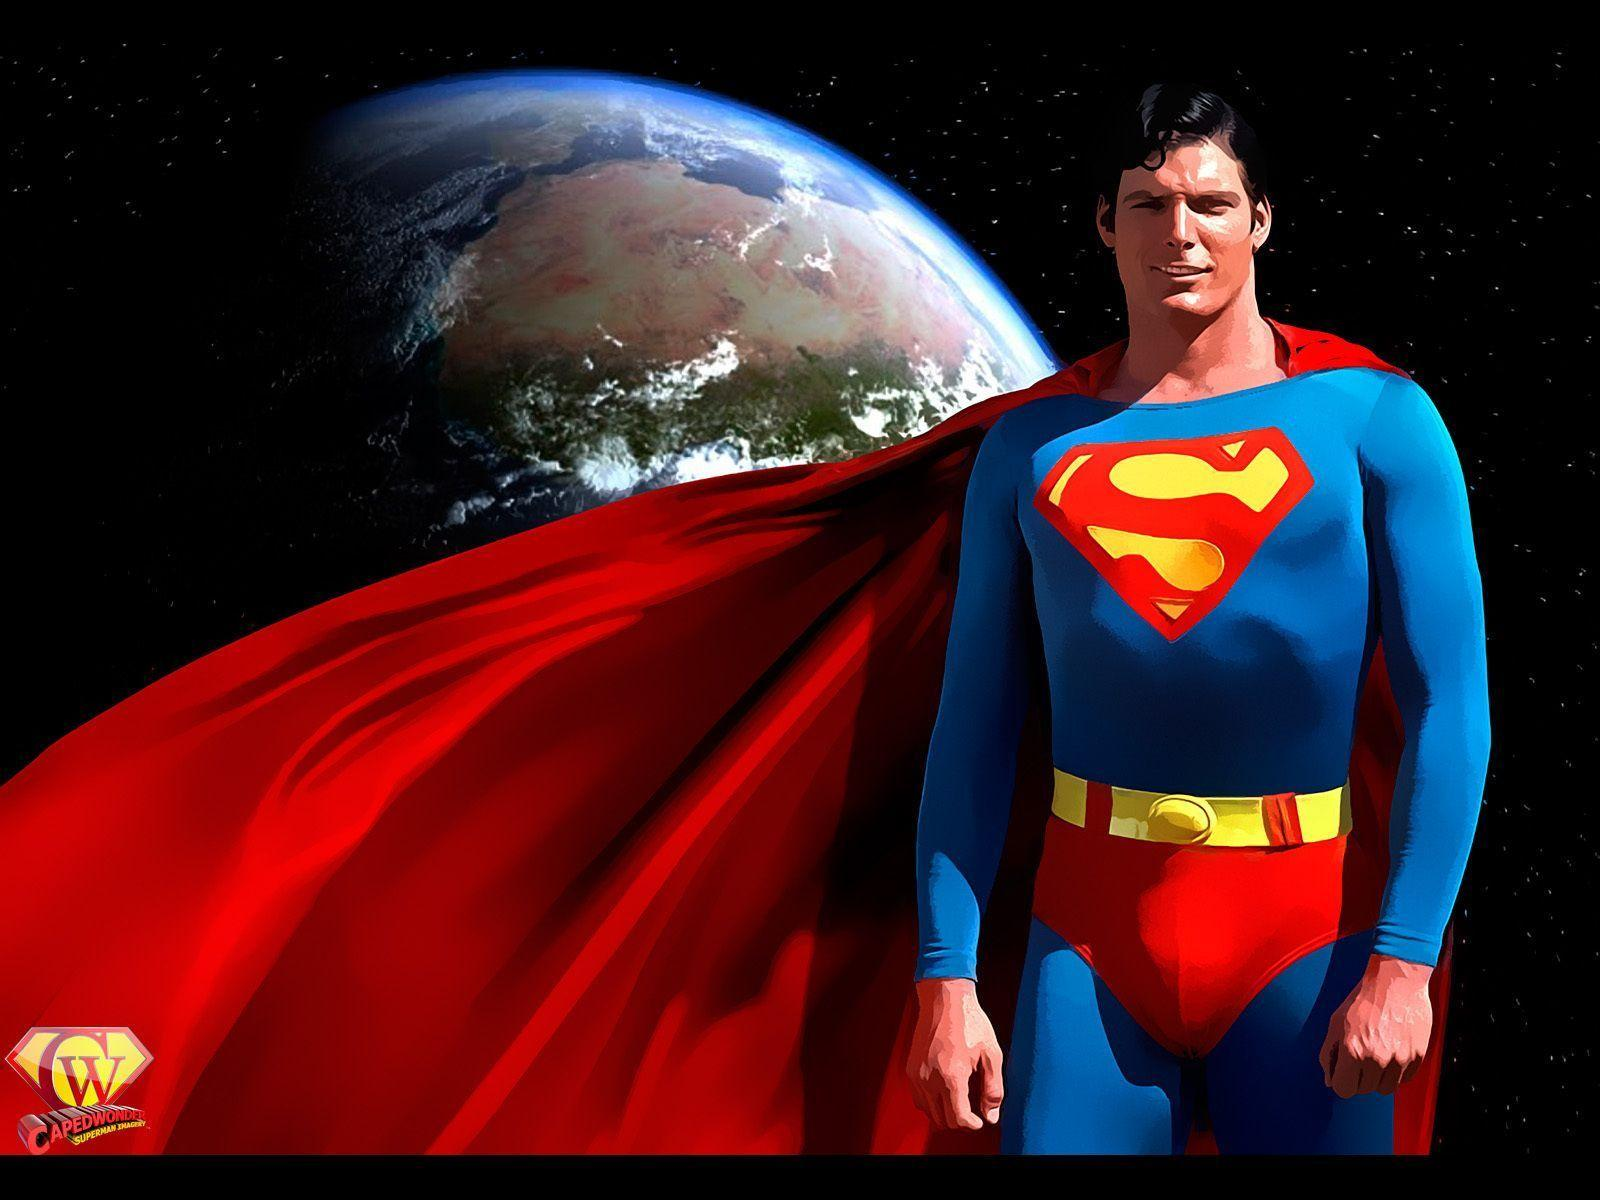 Superman - Superman (The Movie) Wallpaper (20439326) - Fanpop